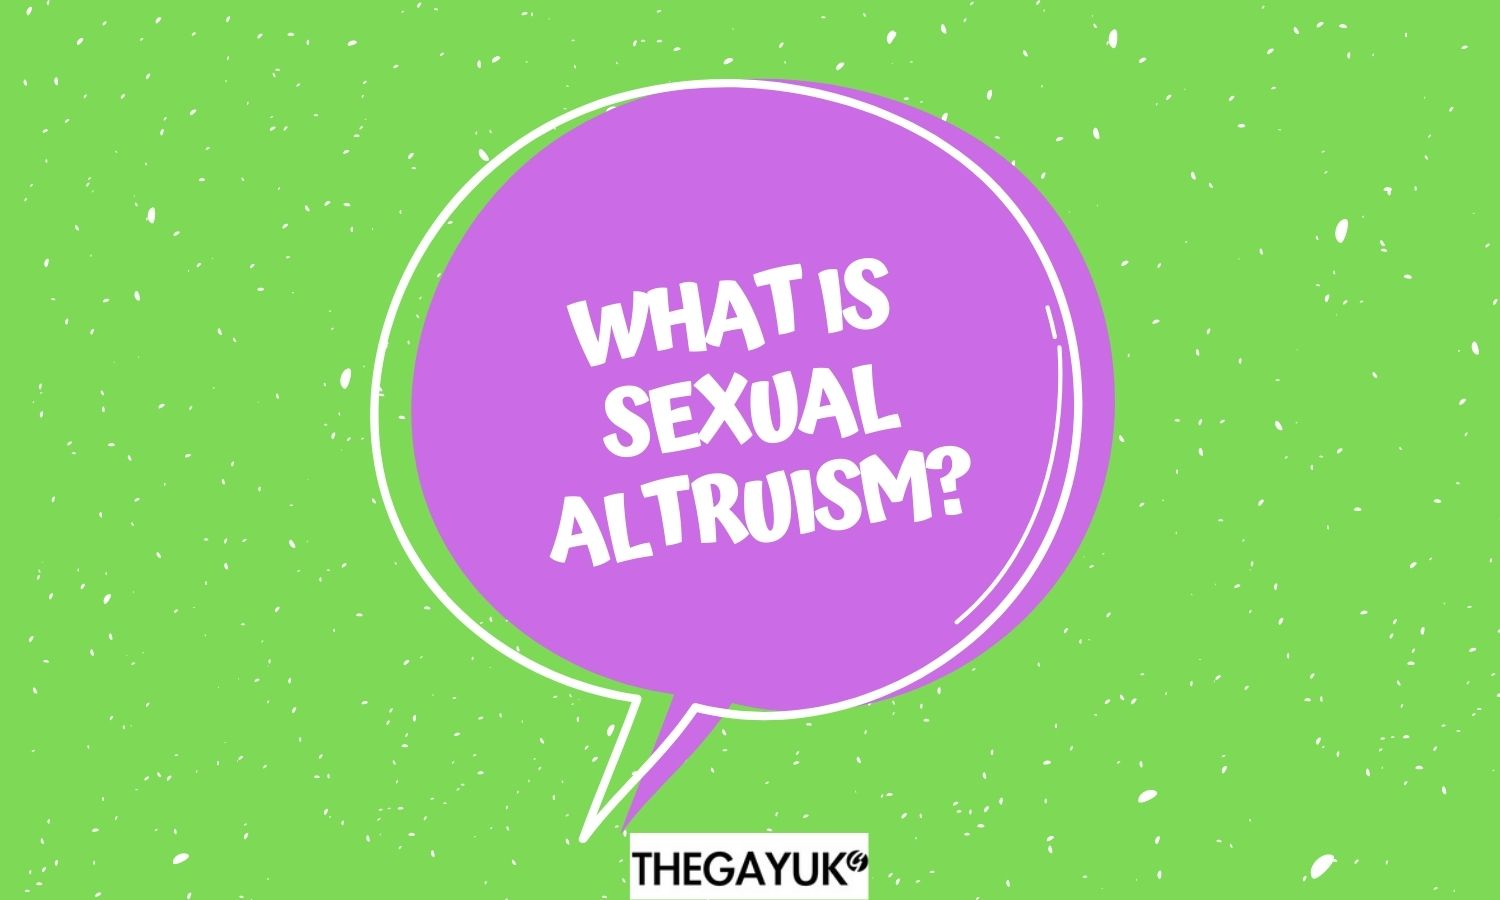 What is Sexual Altruism?